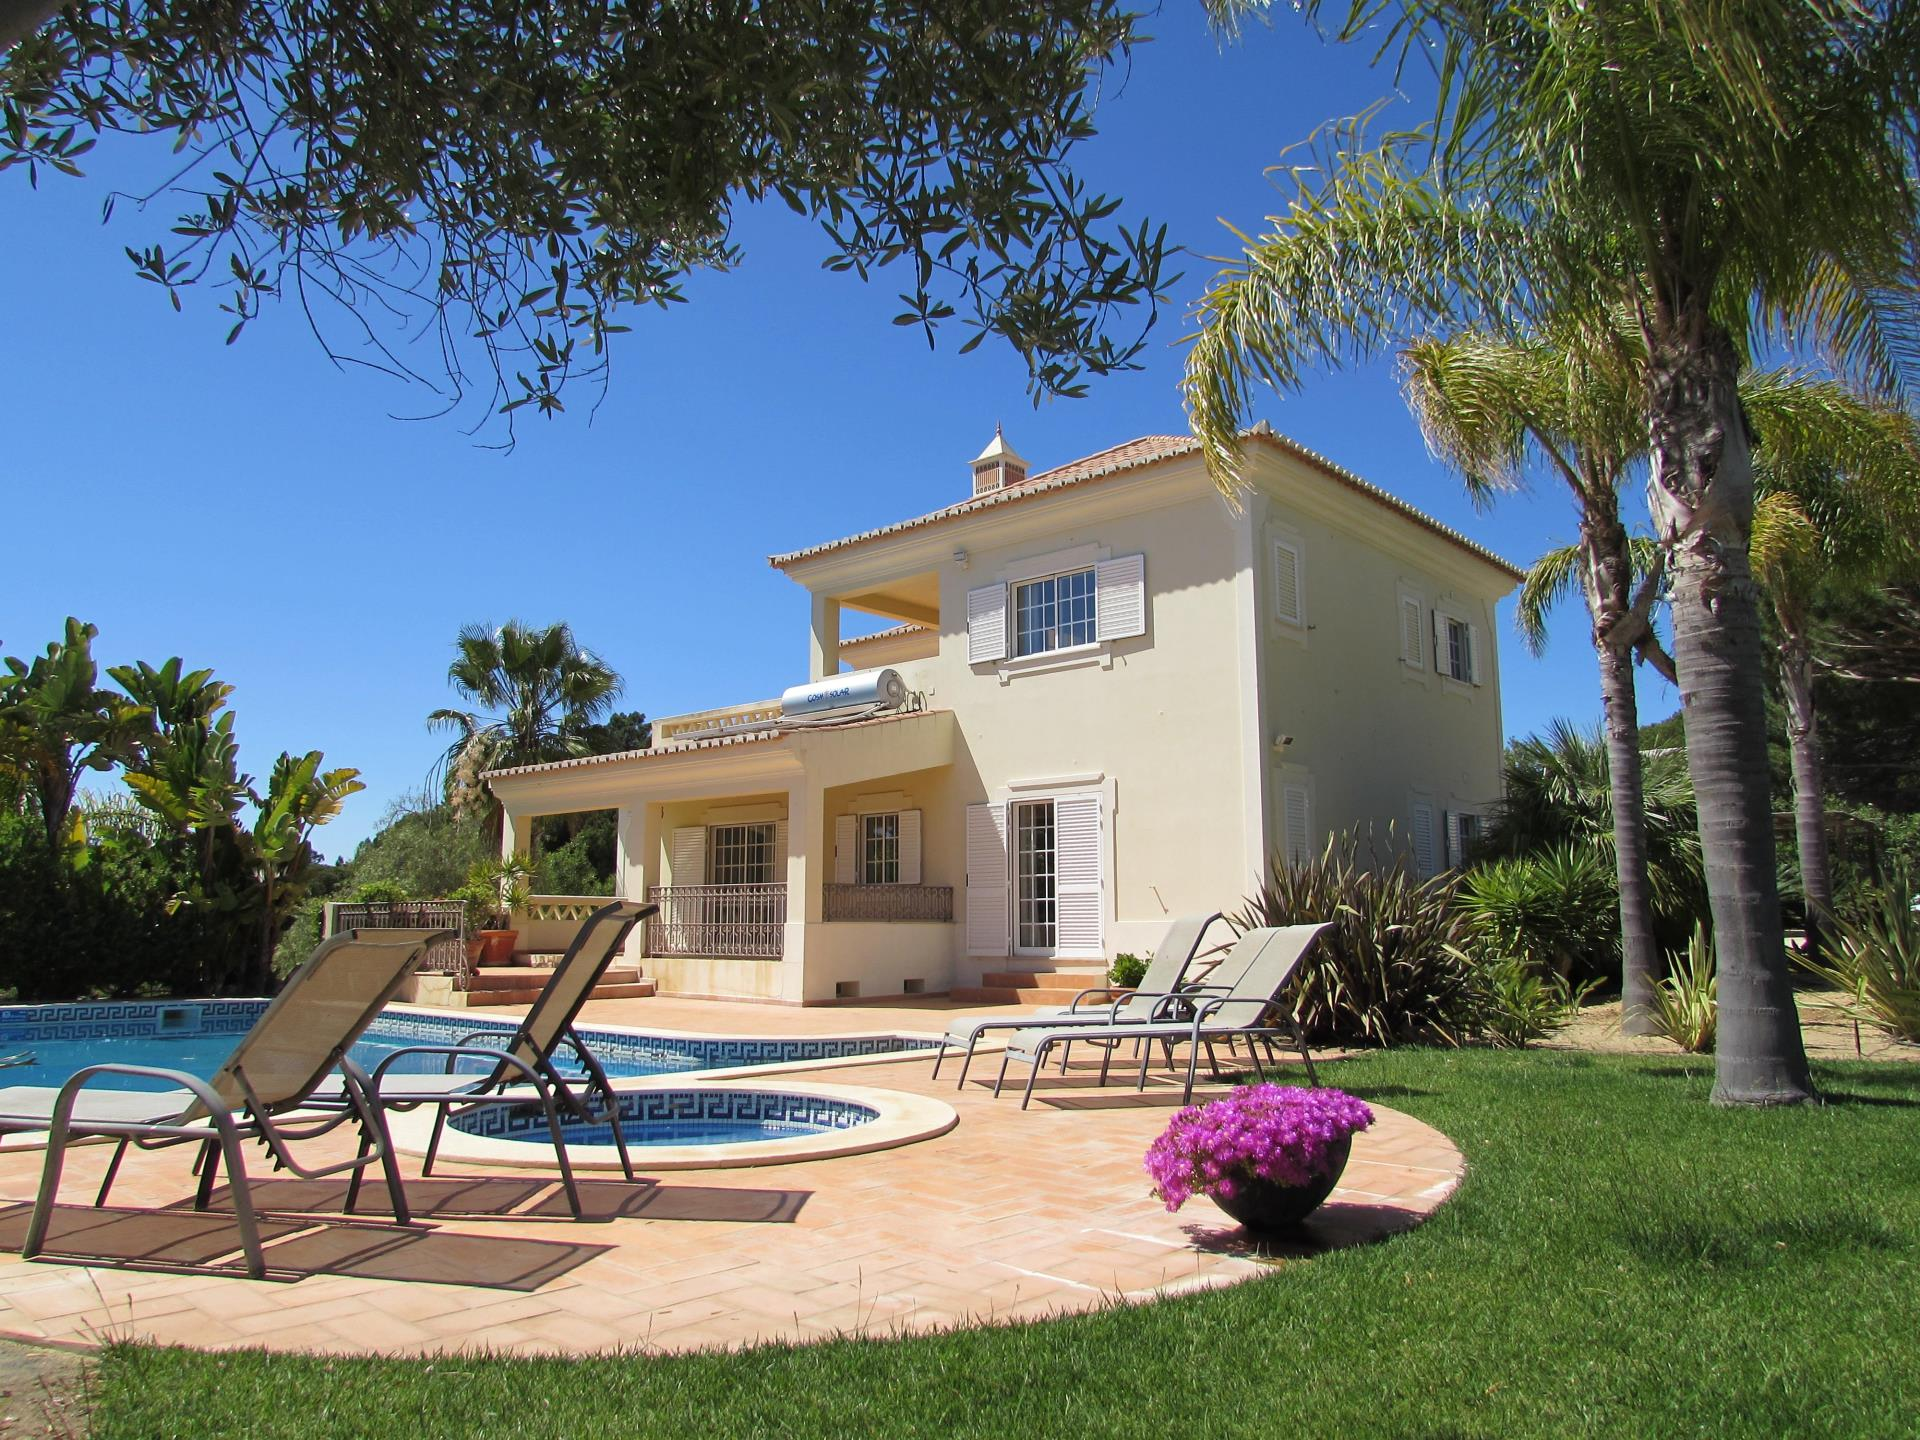 Casa Unifamiliar por un Venta en Detached house, 4 bedrooms, for Sale Loule, Algarve Portugal